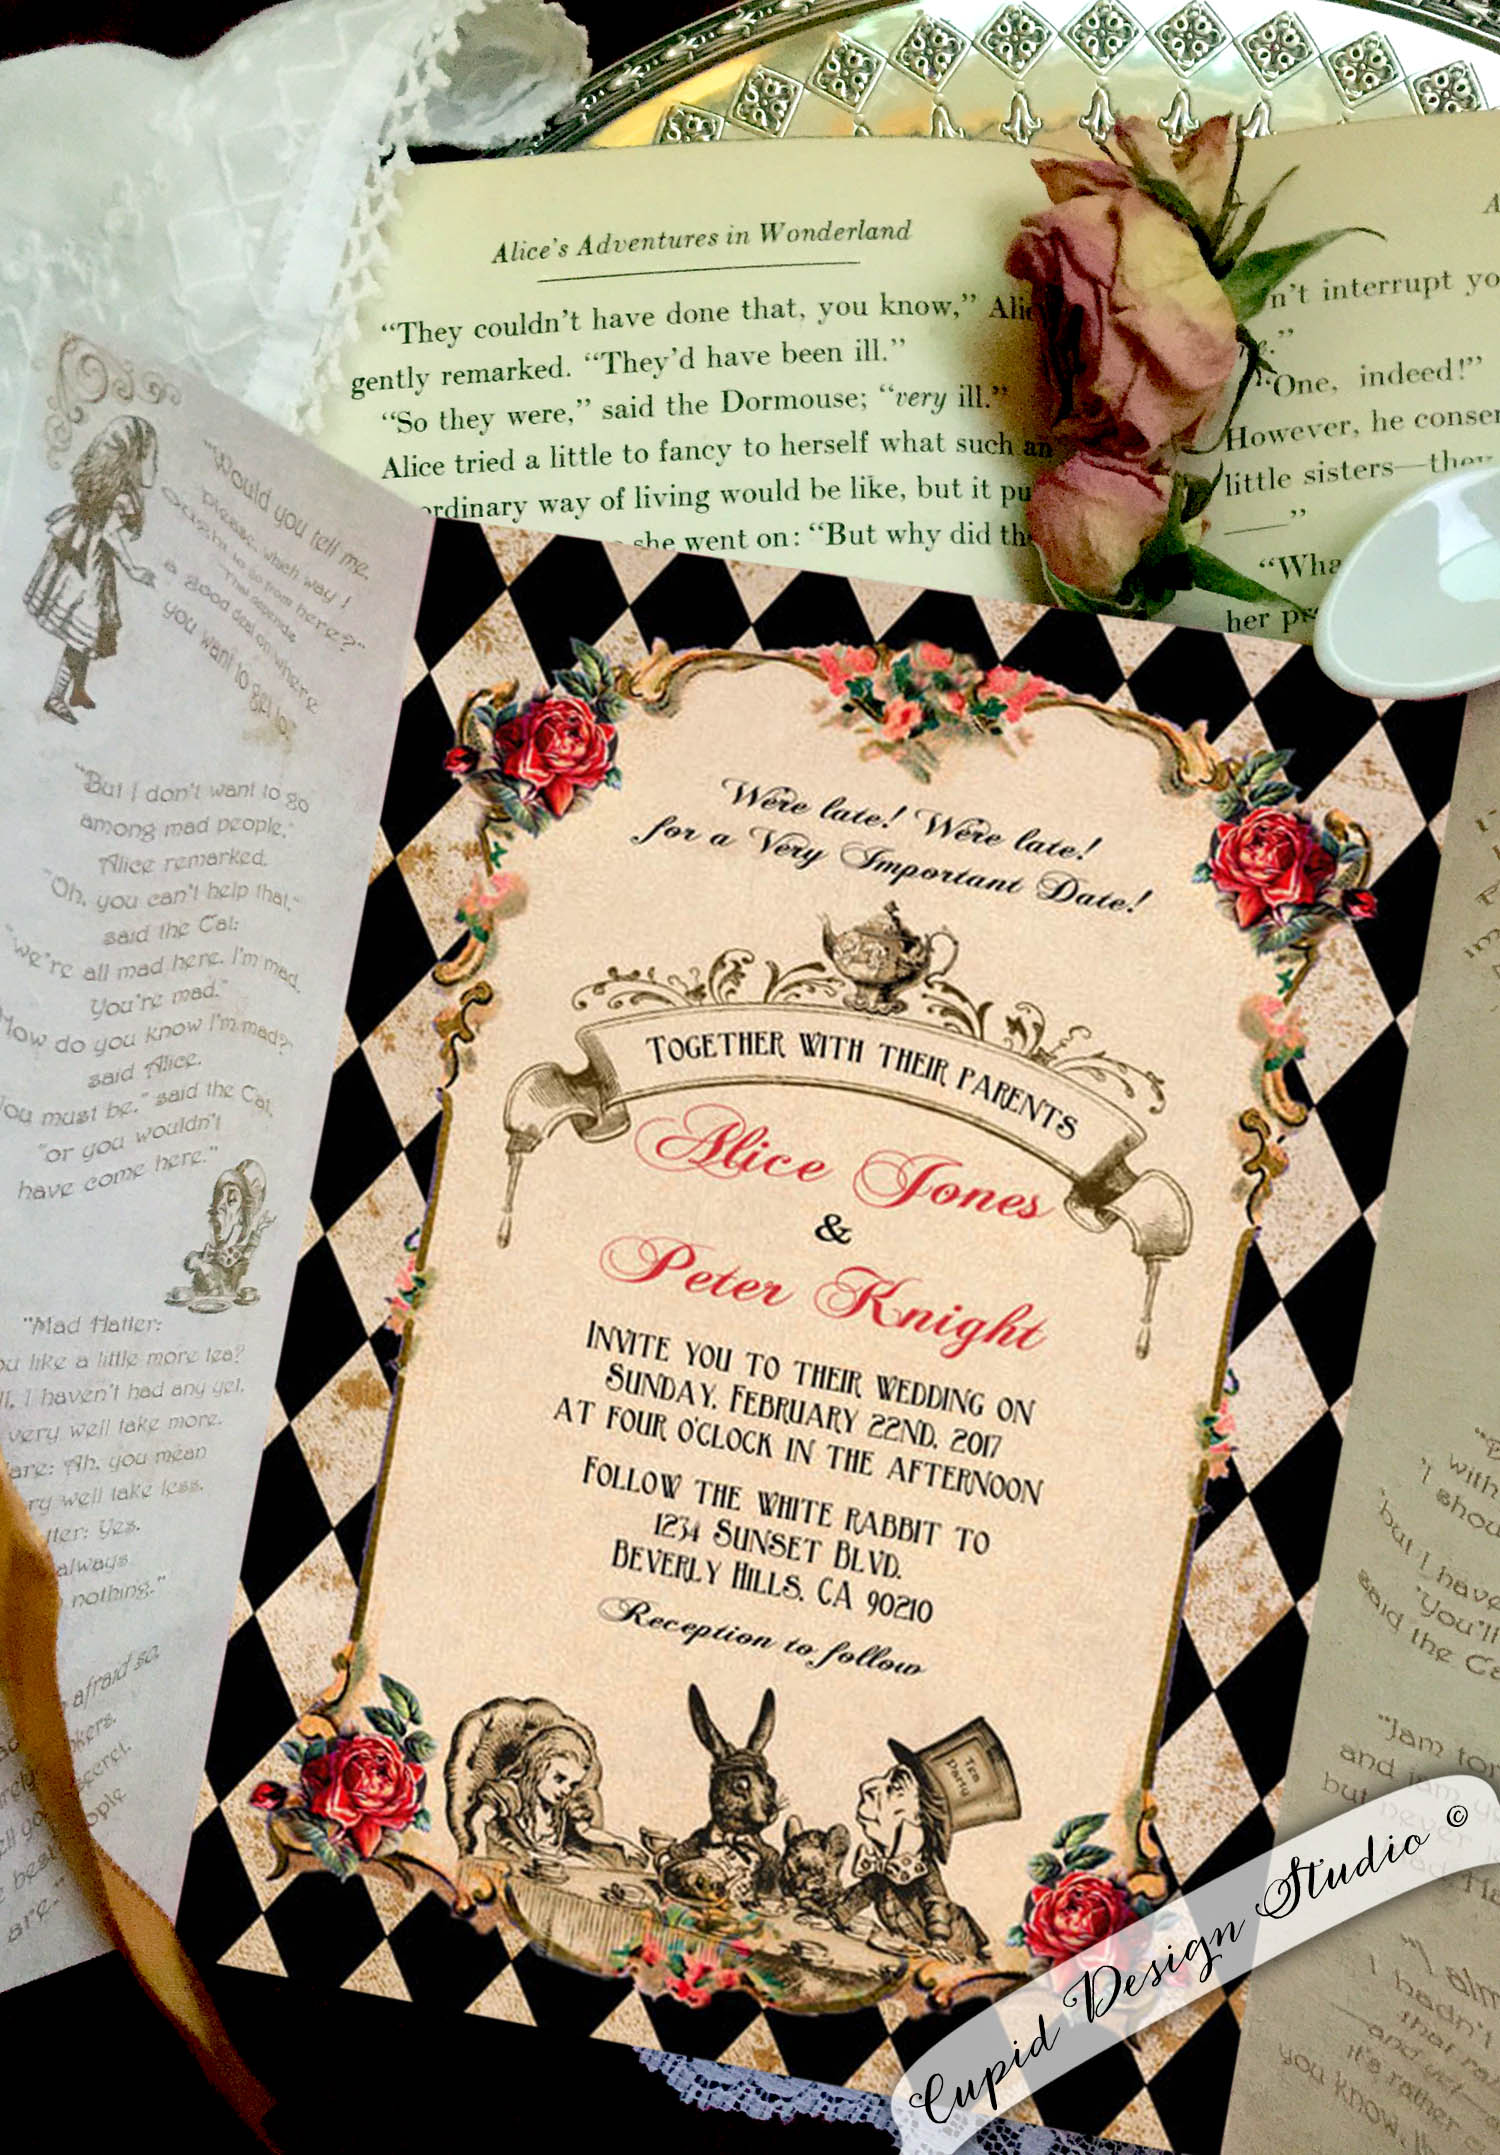 Personalized Wedding Invitations.Alice In Wonderland Gatefold Invitations Mad Hatter Tea Party Personalized Invites 5x7